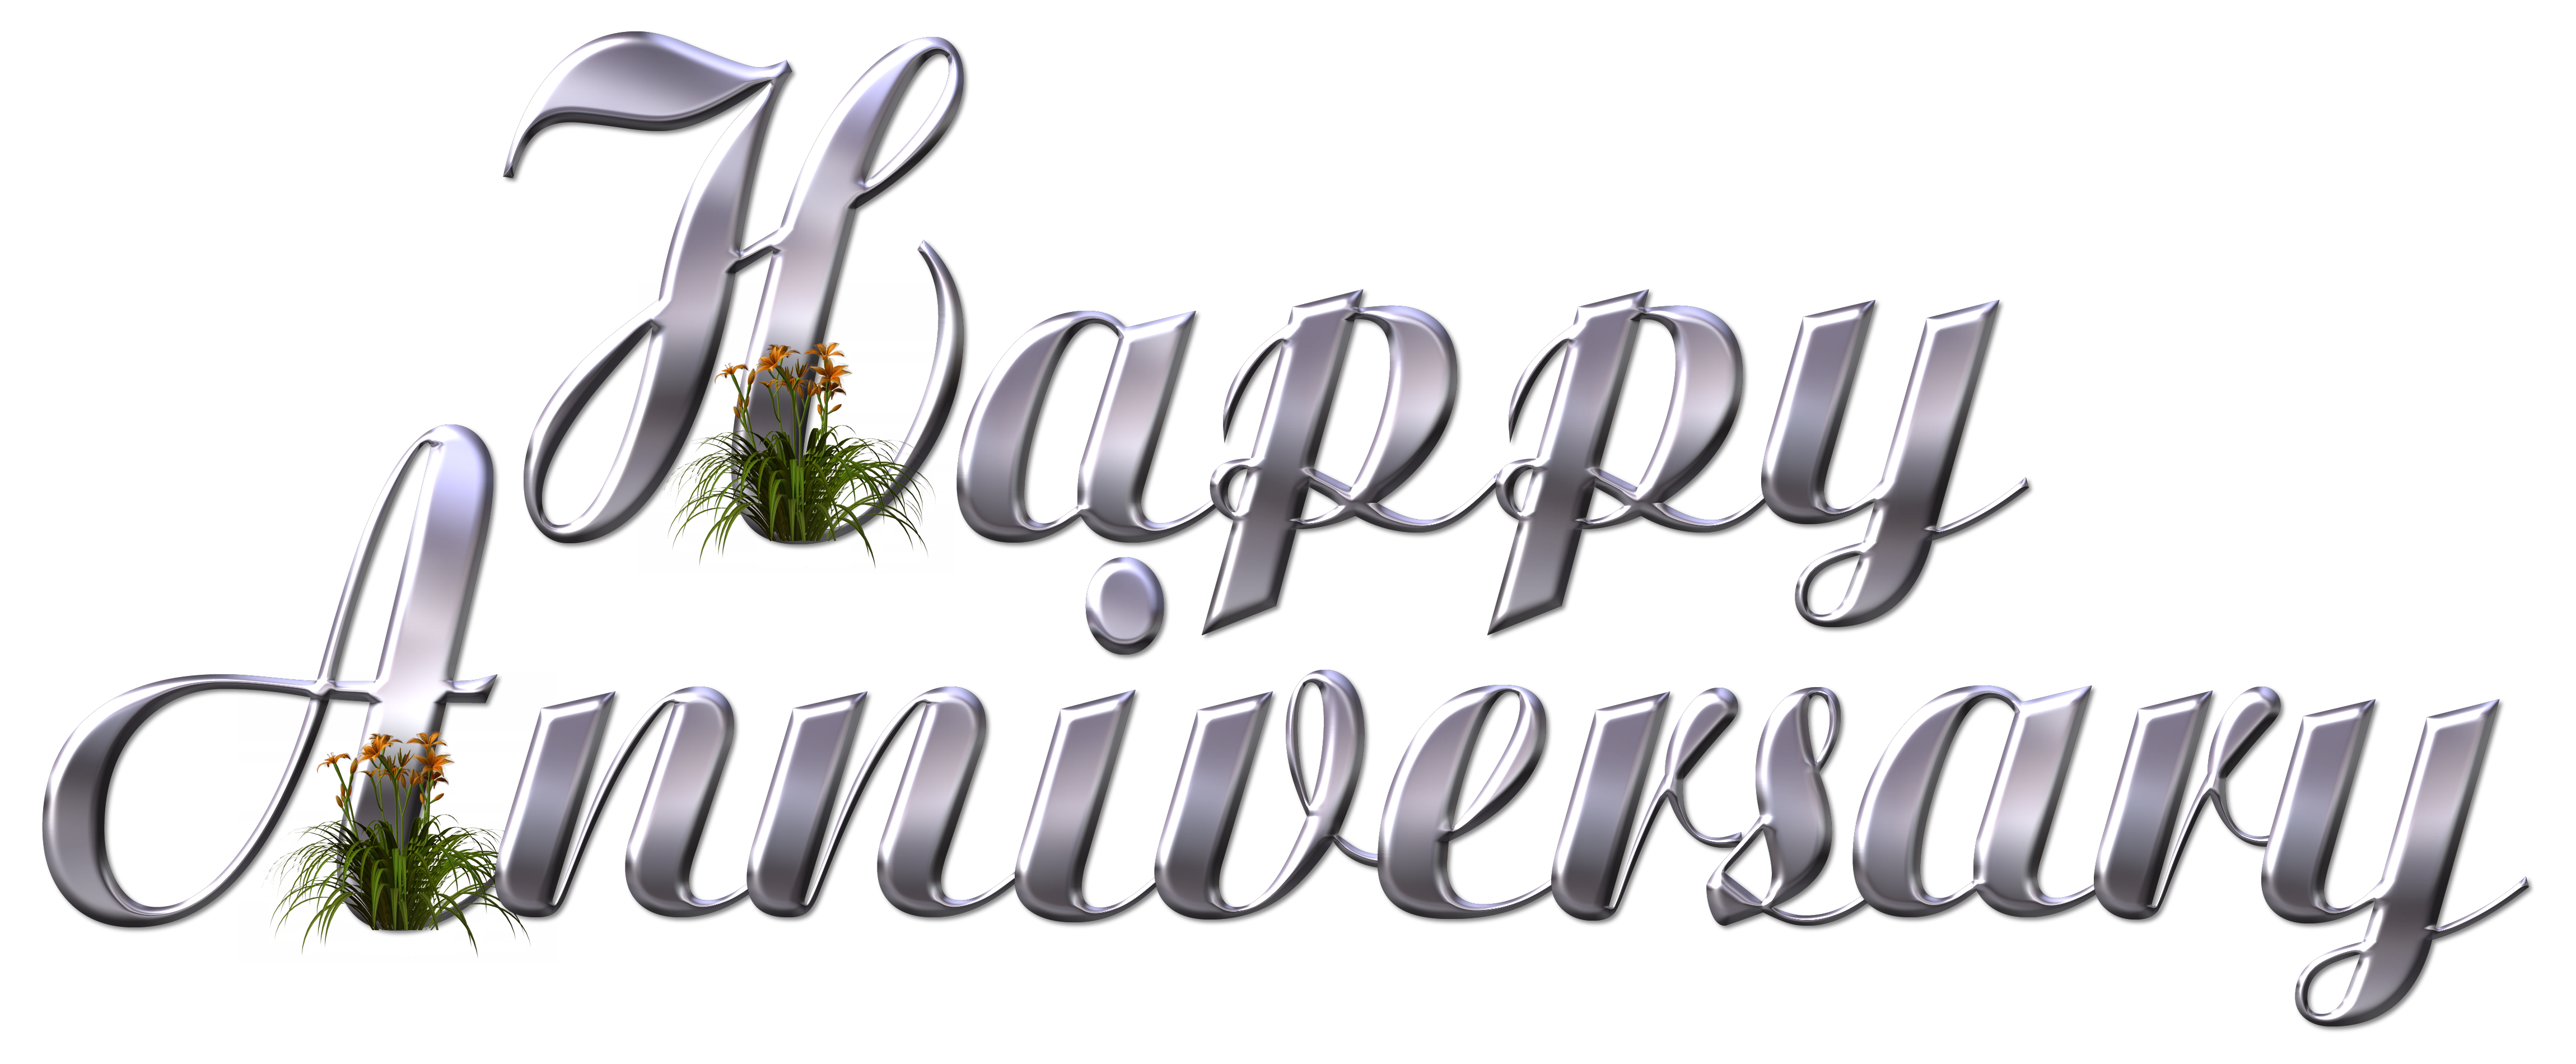 anniversary png - Google Search | Happy Anniversary | Pinterest ...